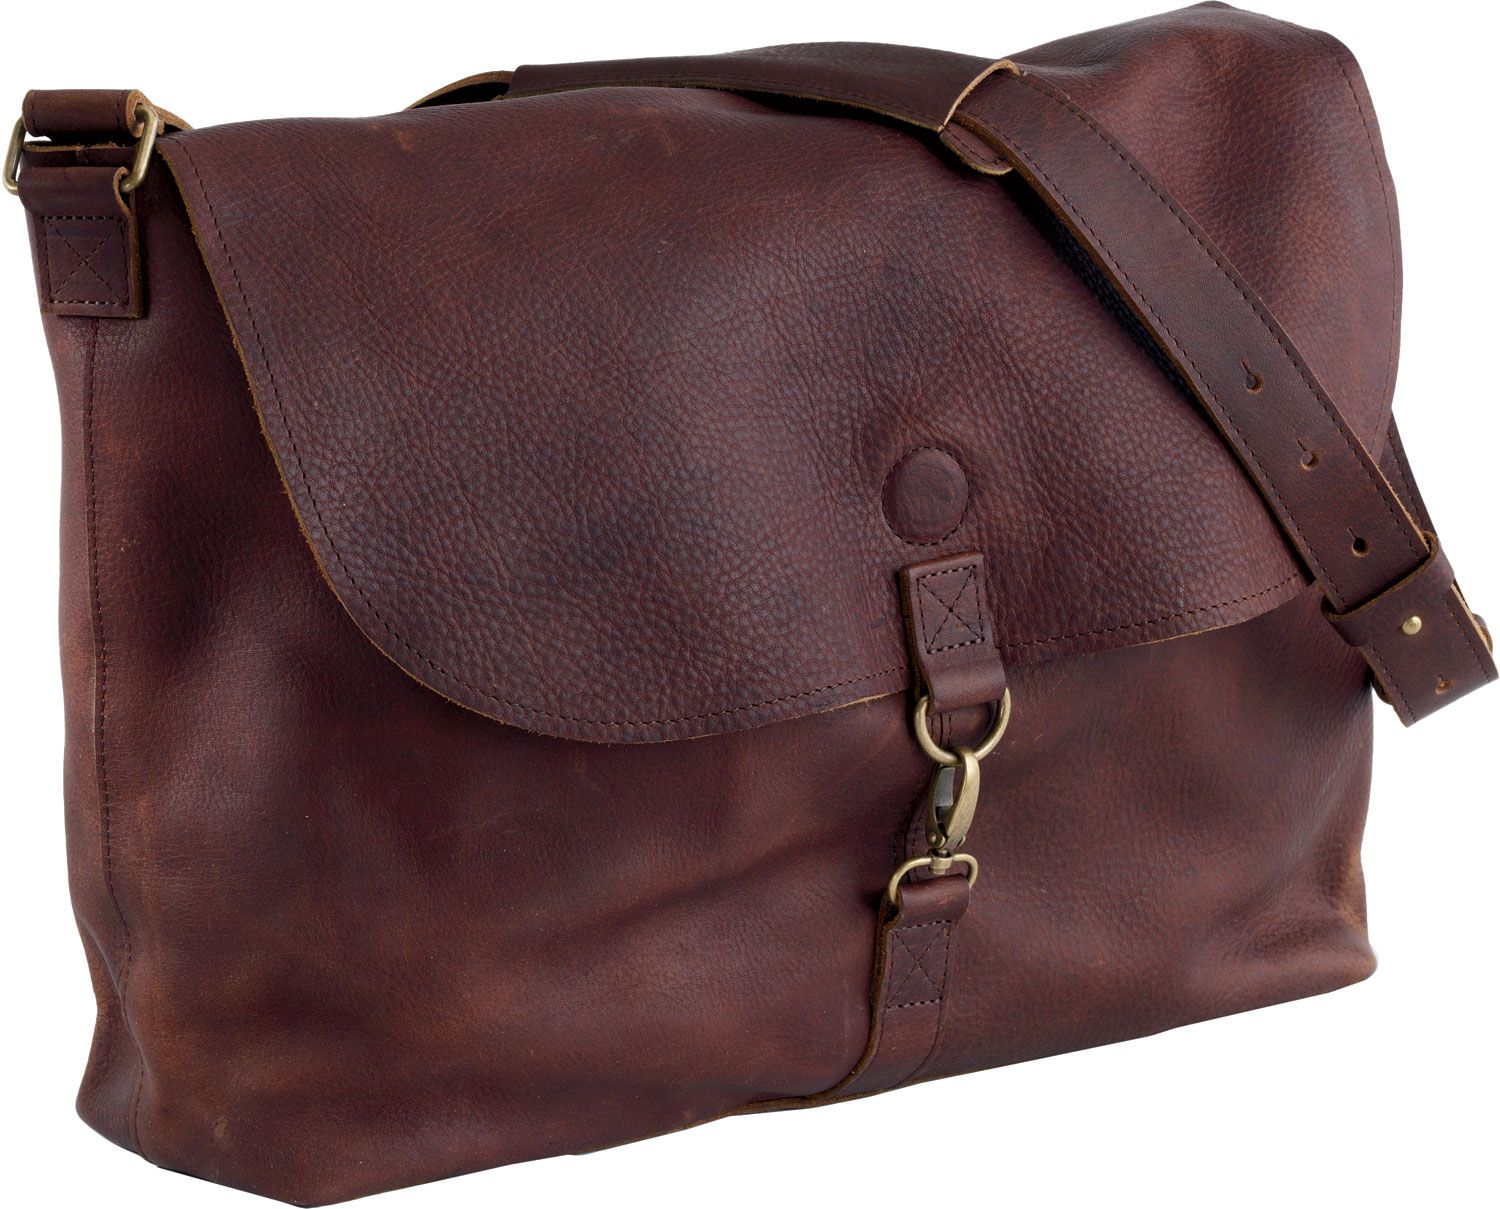 Lifetime Leather, only from Duluth Trading Co. I am obsessed with this bag and the color Cognac!!